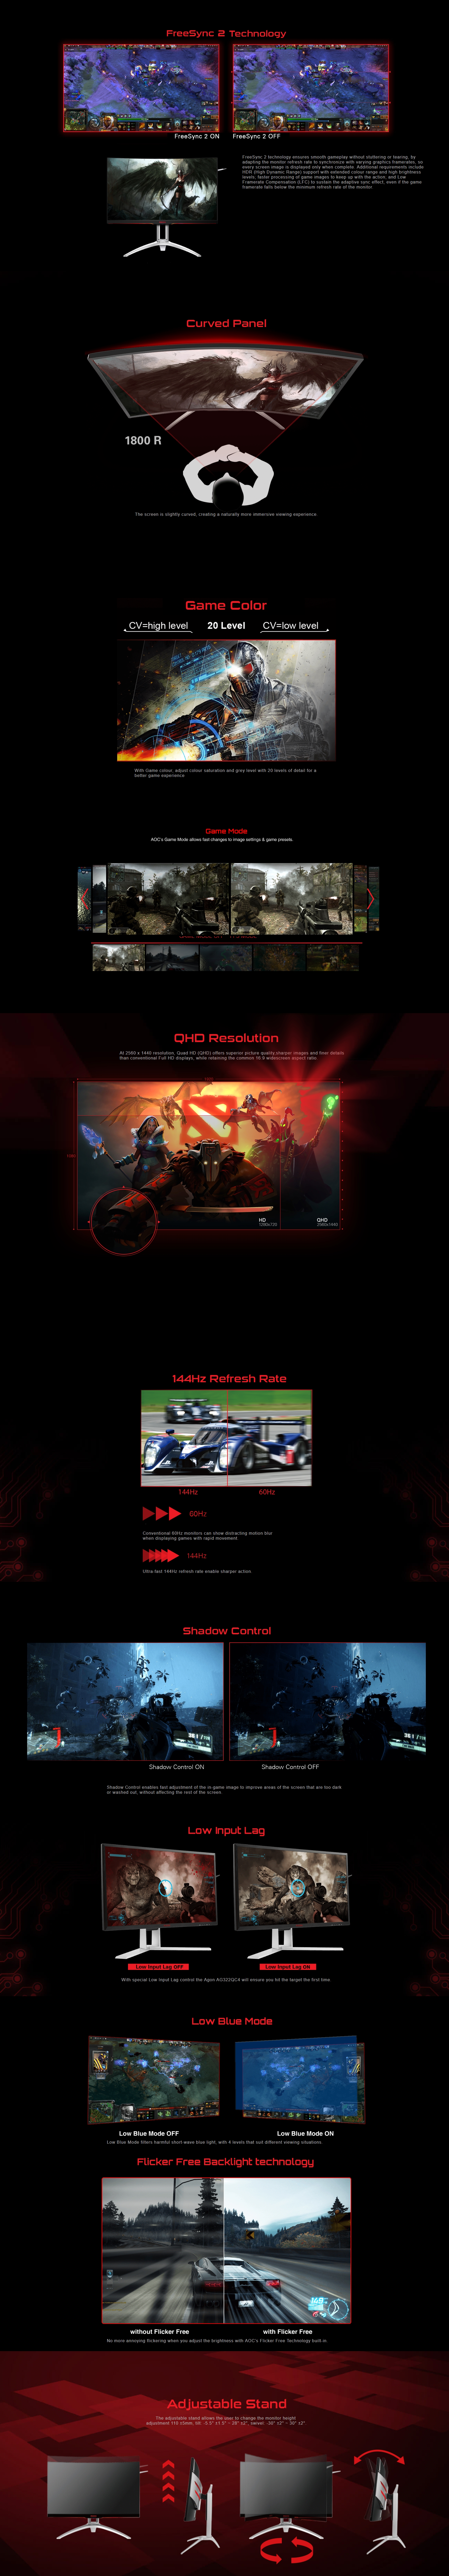 """A large marketing image providing additional information about the product AOC AGON AG322QC4 31.5"""" WQHD FreeSync 2 Curved 144Hz 4MS VA LED Gaming Monitor - Additional alt info not provided"""